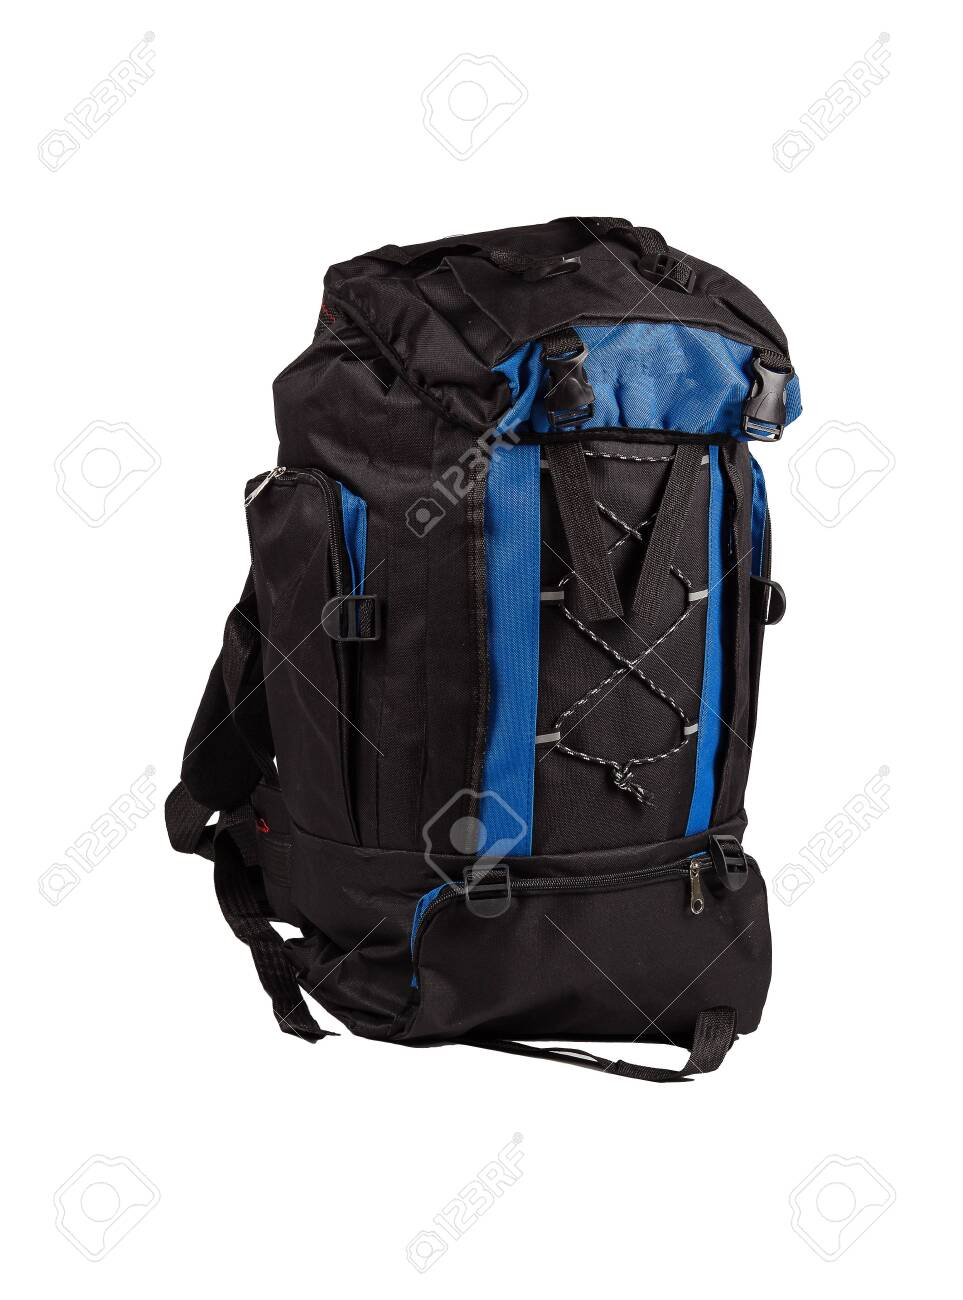 Blue and black camping backpack isolated on white background. - 132842876